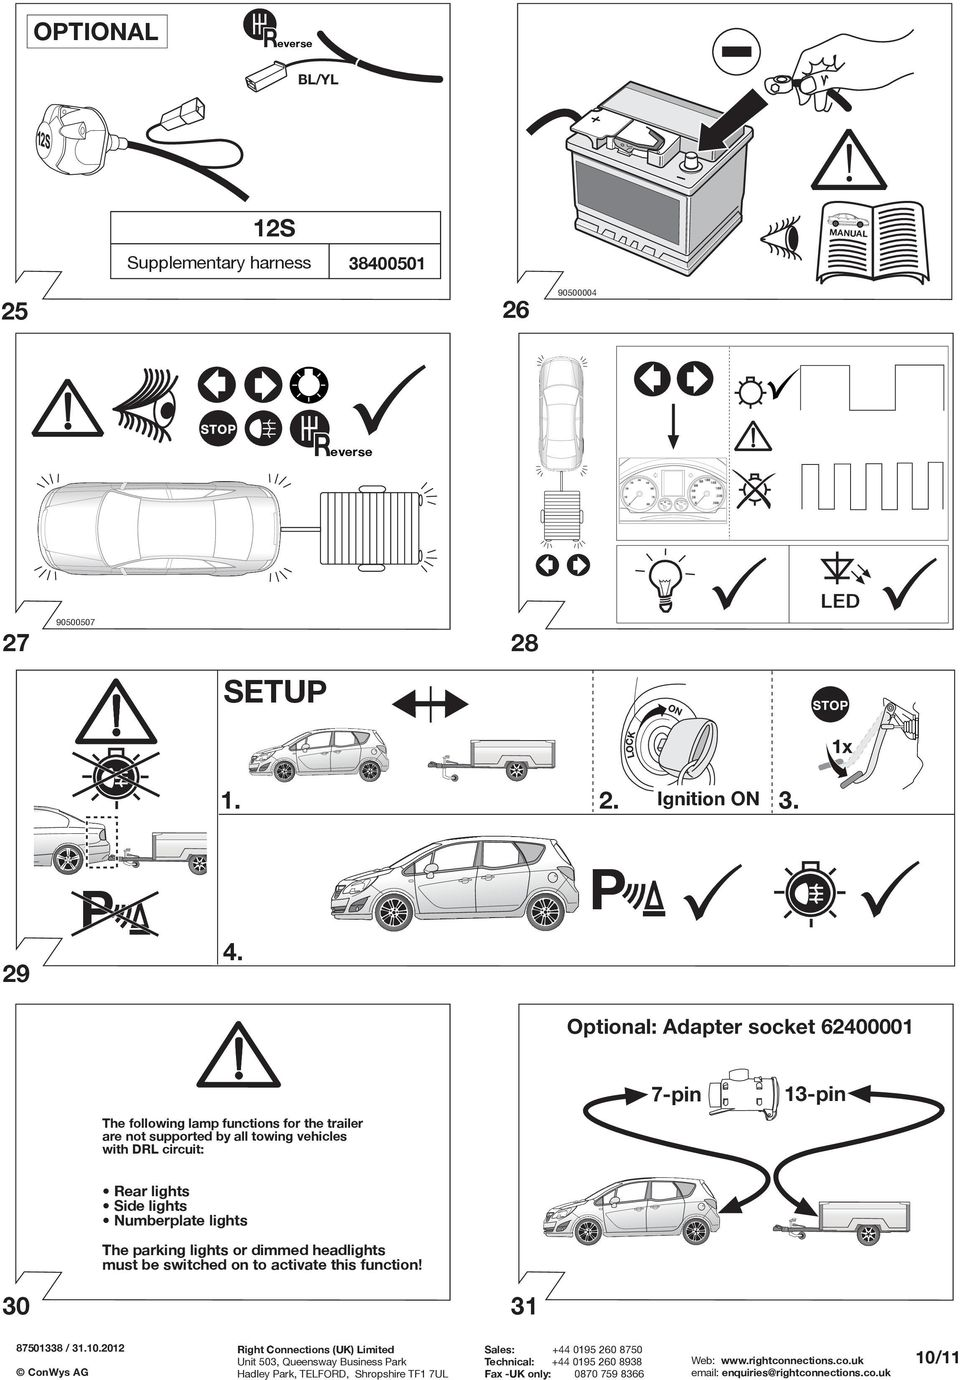 Fitting instructions part no rc vauxhall meriva b 0610 important optional adapter socket 62400001 the following lamp functions for the trailer are not supported by asfbconference2016 Gallery